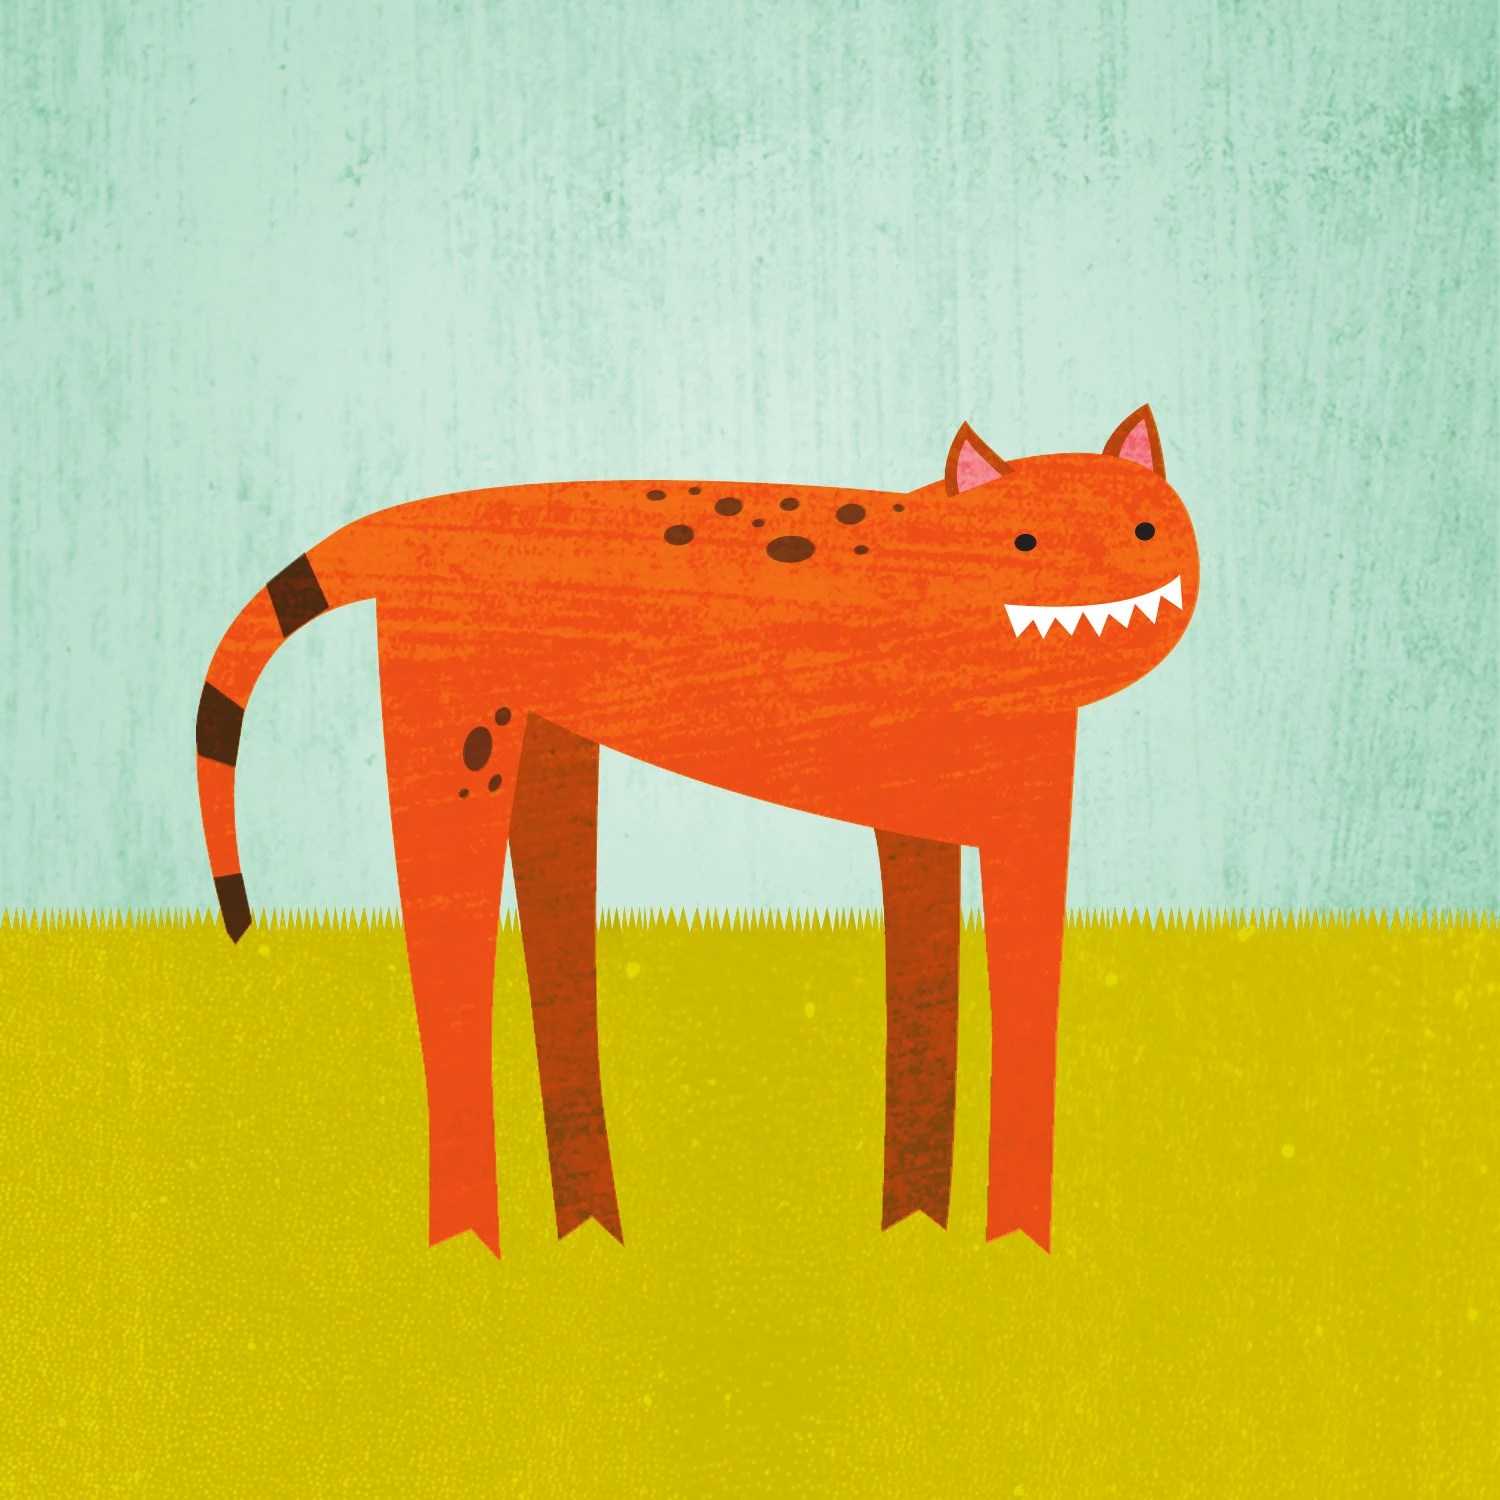 Happy Cat - 8x8 cat print mounted on wood panel - Meremart